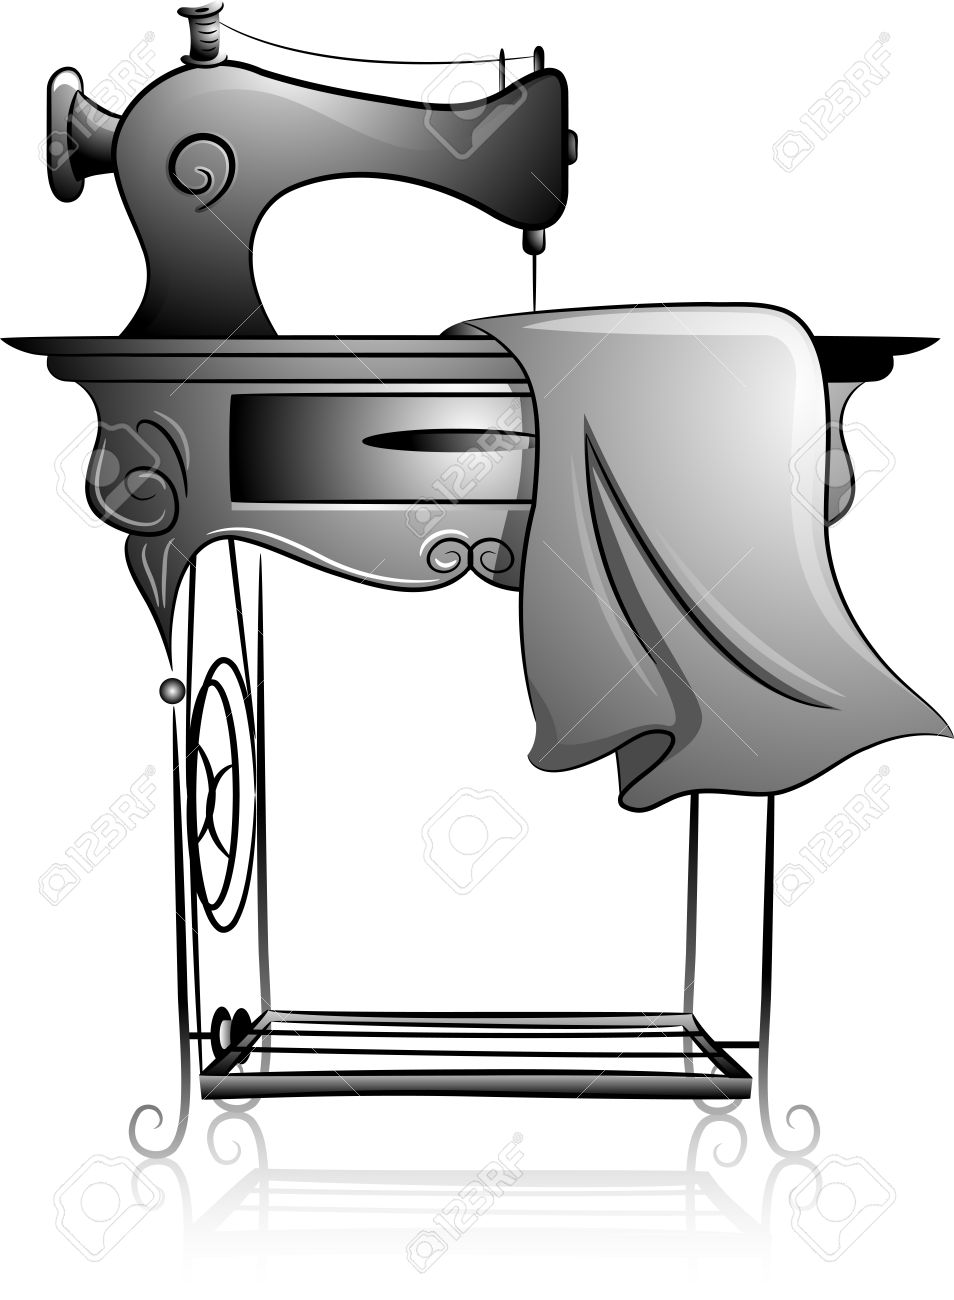 Icon Illustration Featuring A Treadle Sewing Machine Drawn In.